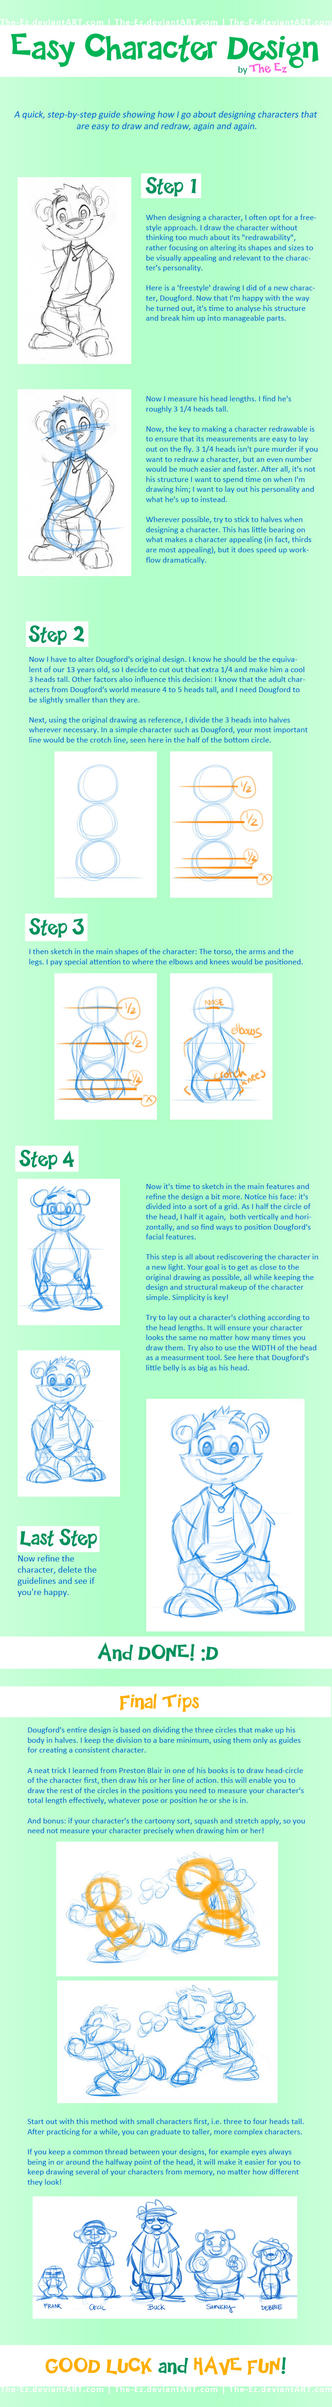 Tutorial For Character Design : Tutorial easy character design by the ez on deviantart